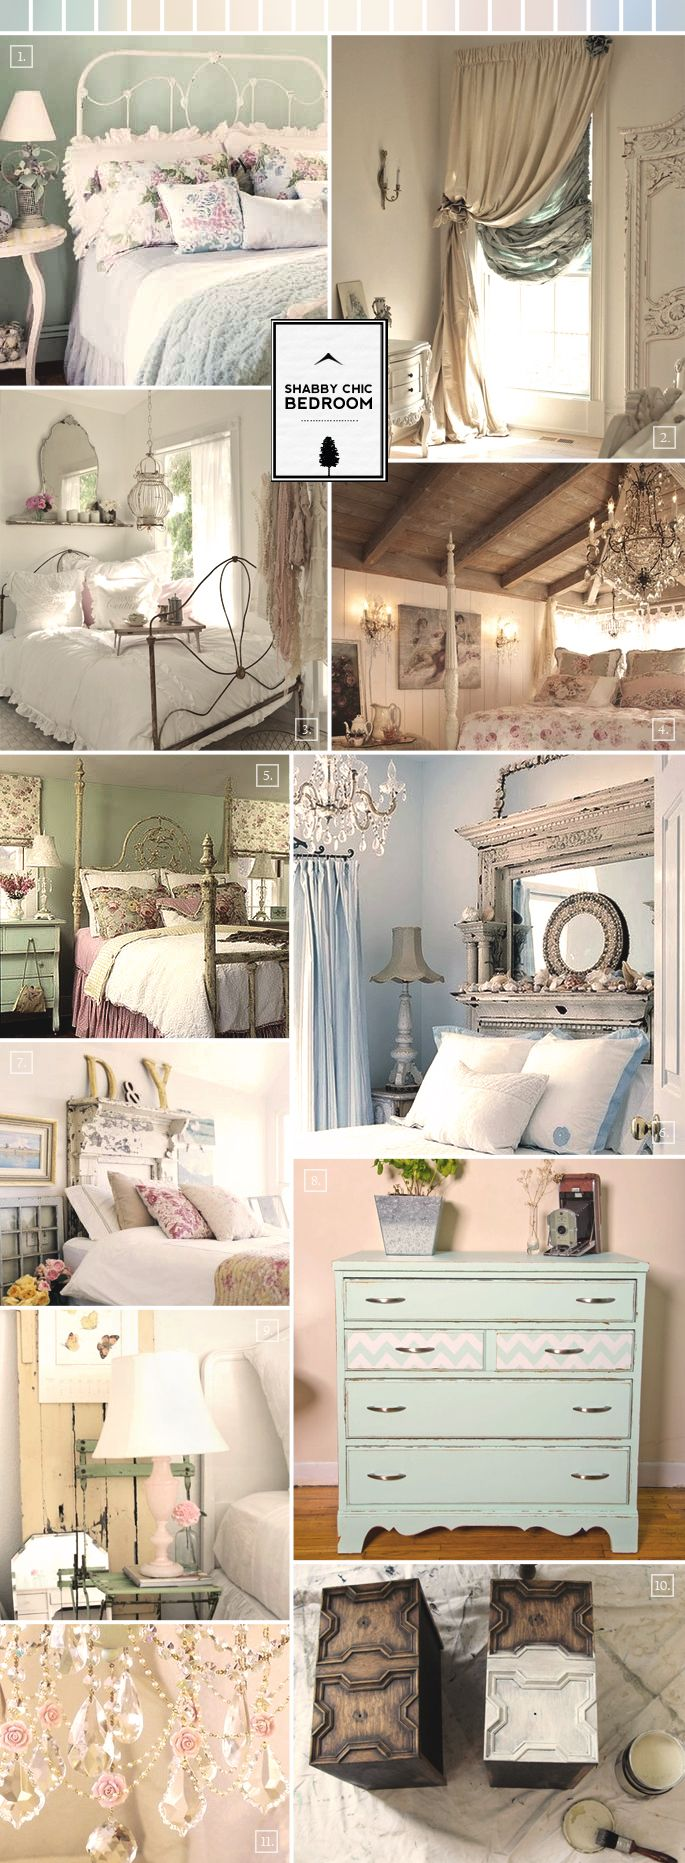 Shabby Chic Bedroom Ideas and Decor Inspiration | Home Tree Atlas